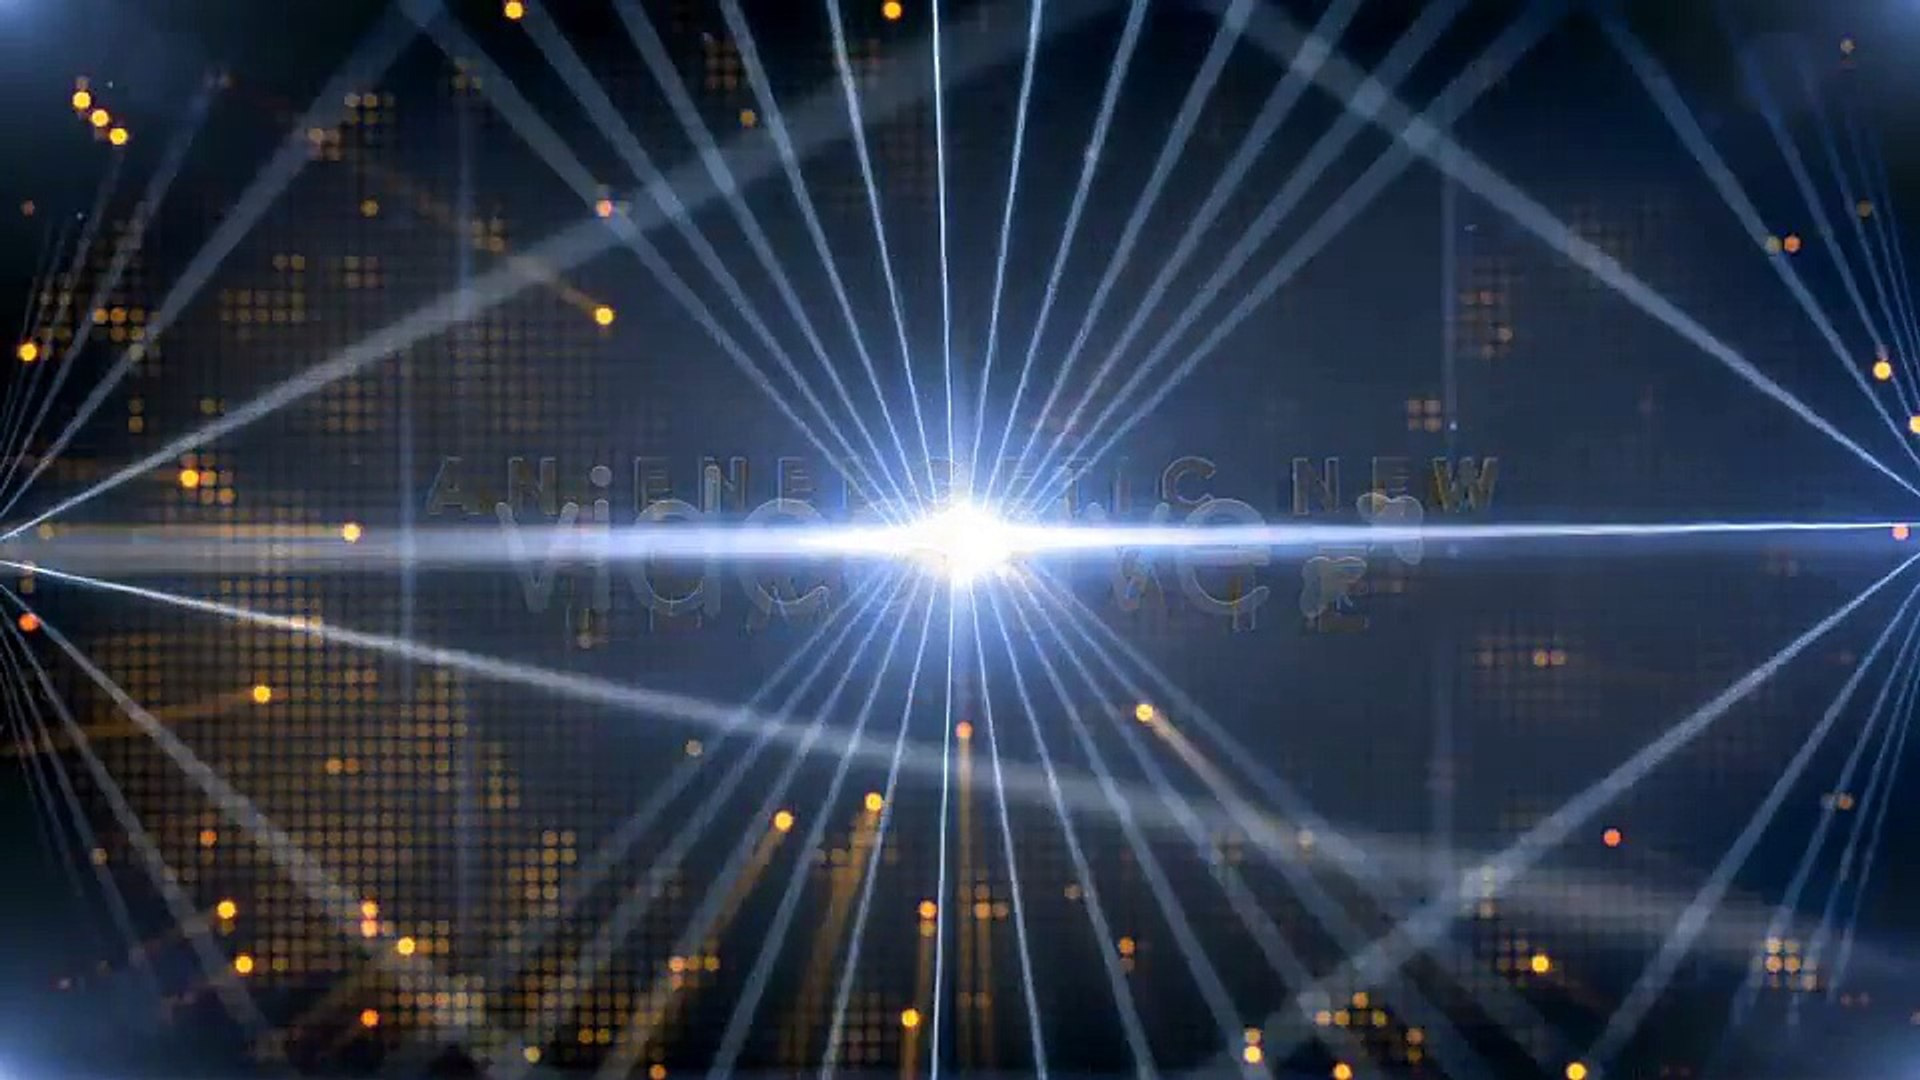 After Effects Project Files - Concert Lights - 3D Corporate Promo - VideoHive 3466054